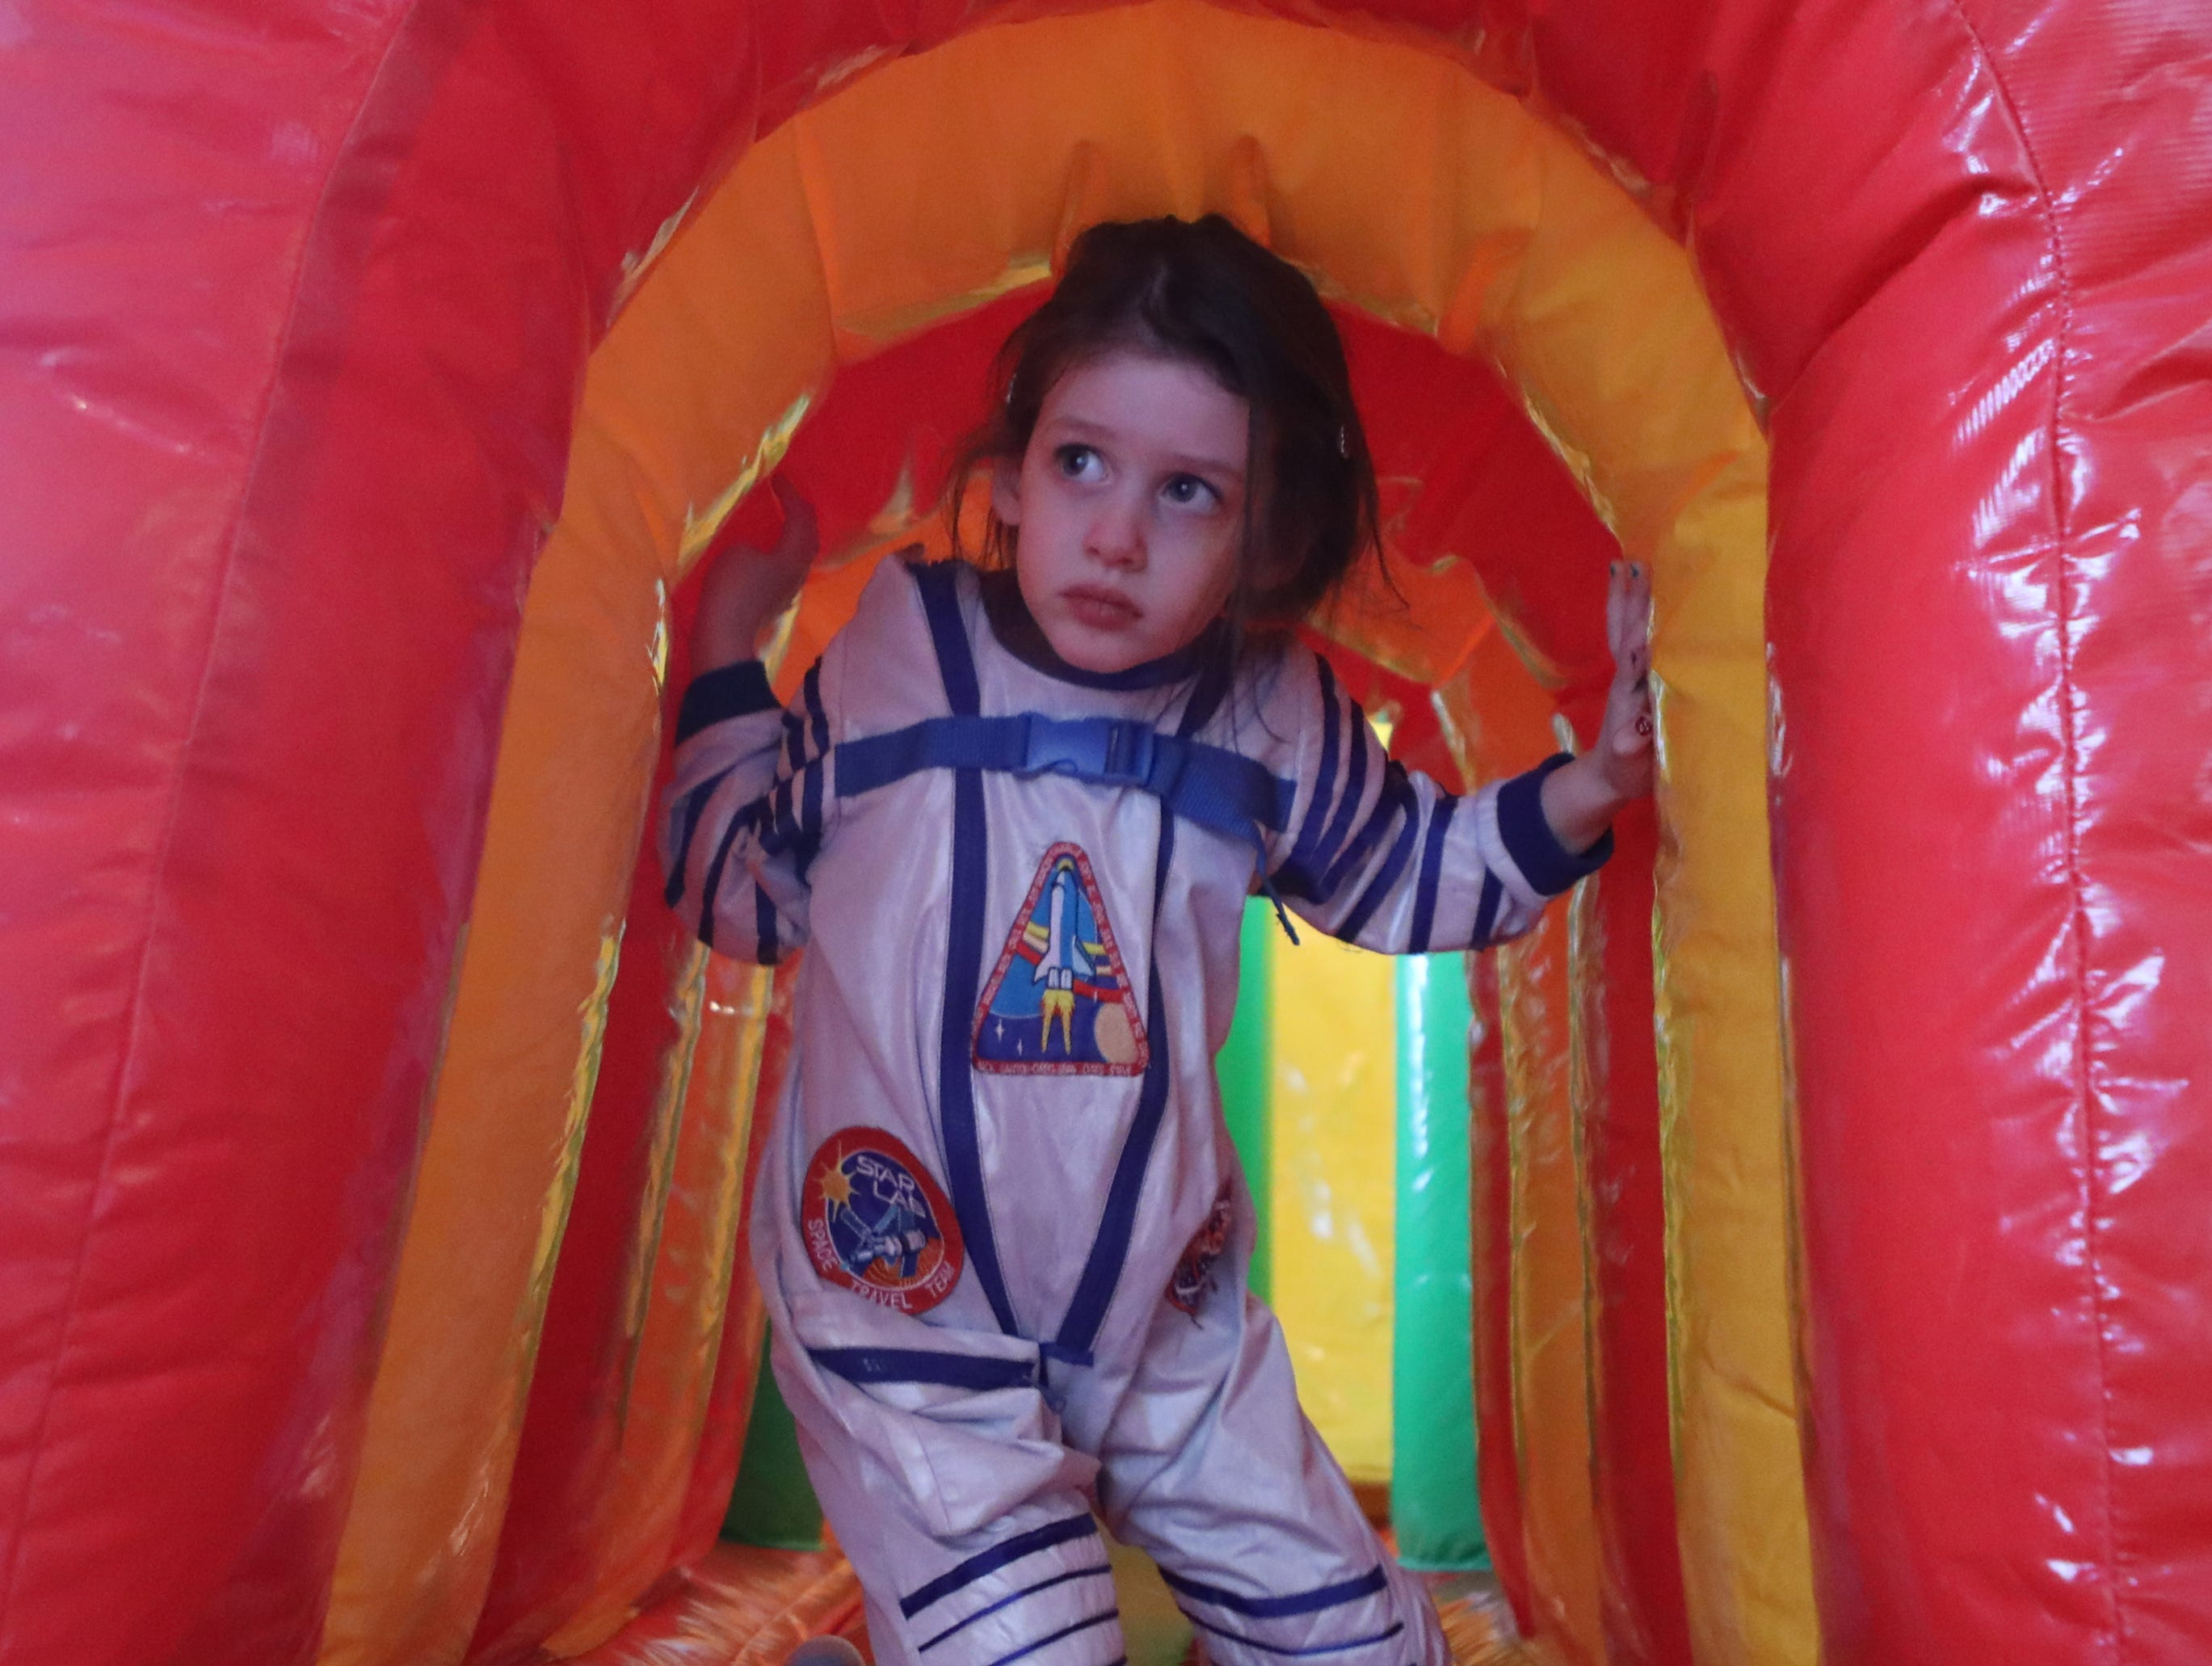 Meirav Liben, 4, dressed as an astronaut, emerges from an inflatable obstacle course, at the Beth Sholom Annual Purim Carnival, in Teaneck.  Sunday, March 24, 2019